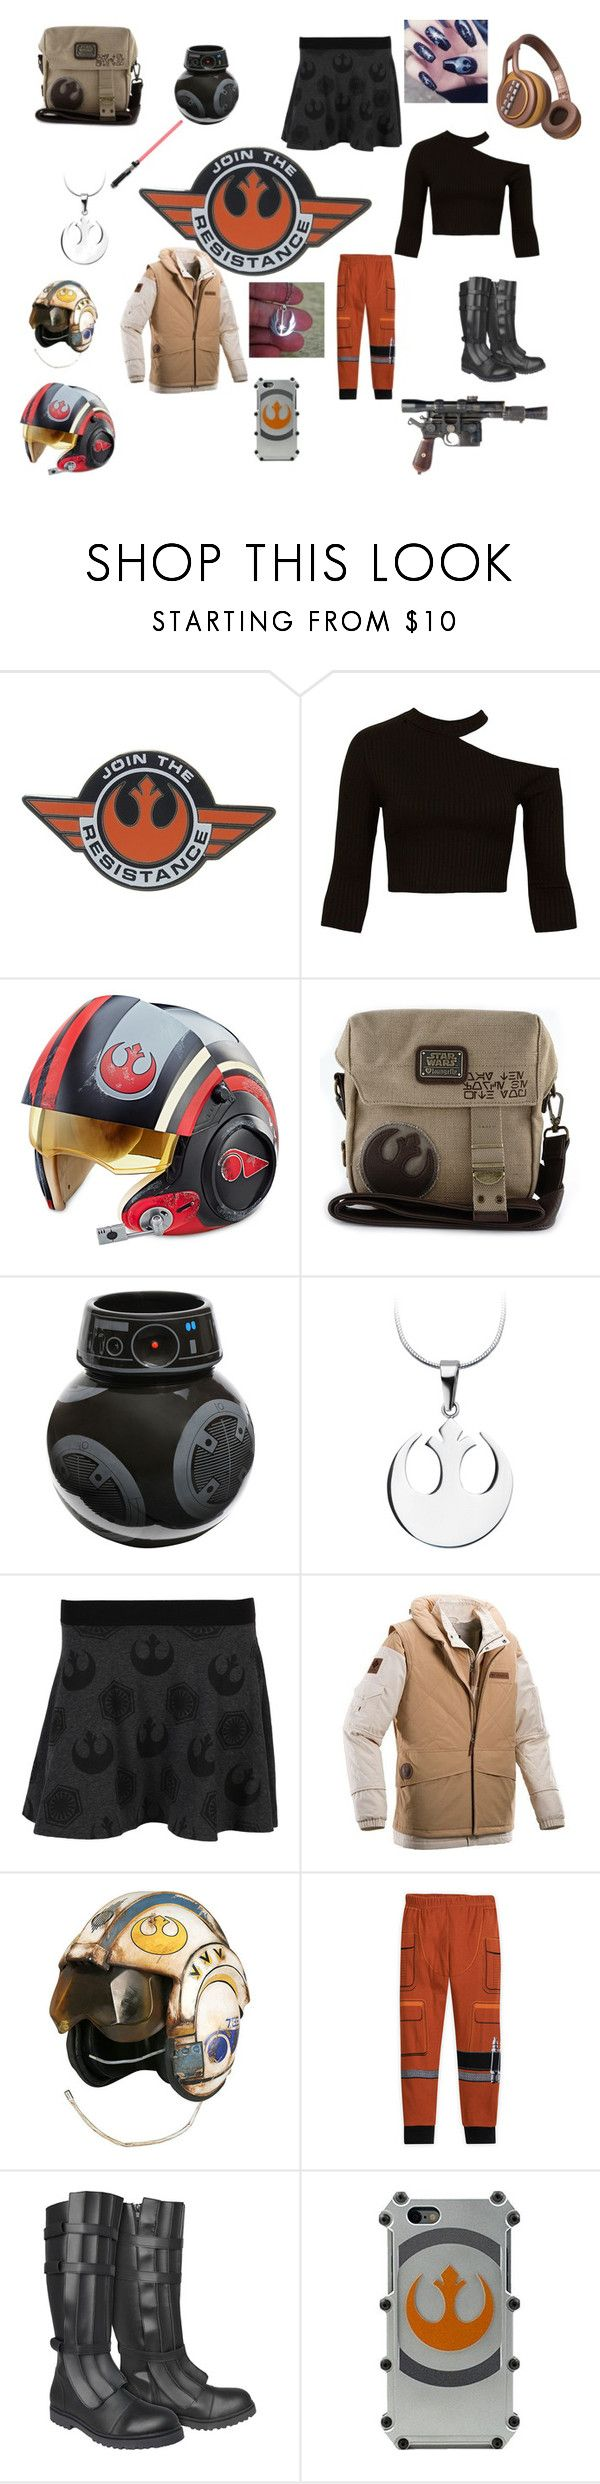 """""""Rebel Forces"""" by jointhehunt05 on Polyvore featuring Disney, Sans Souci, Hasbro, Loungefly and Columbia Sportswear"""